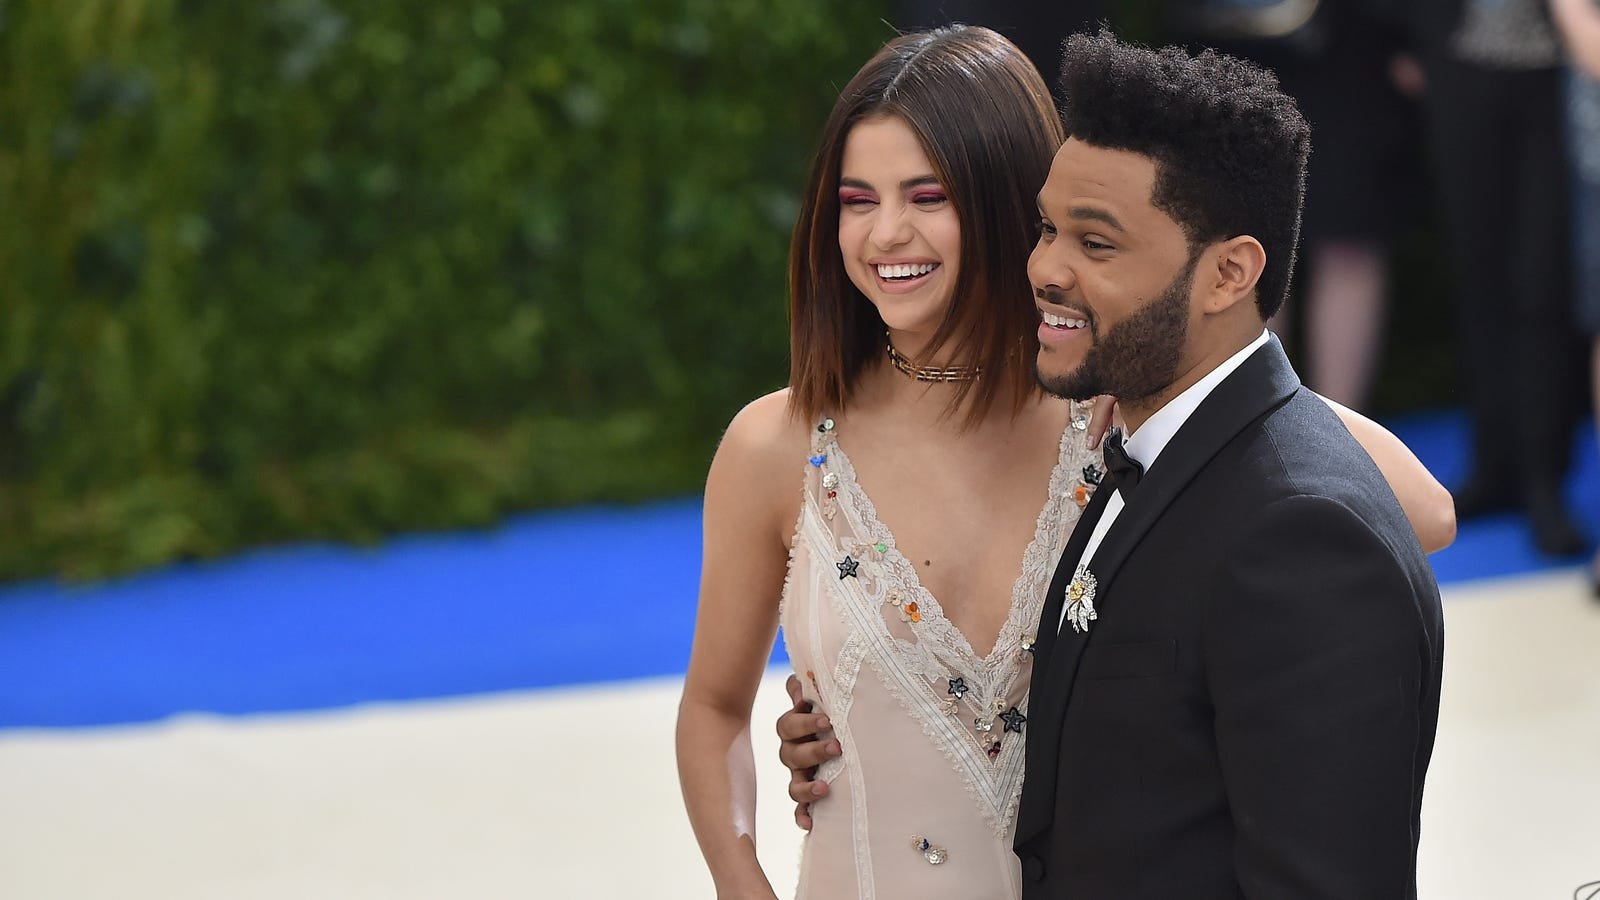 Selena Gomez And the Weeknd Have Split But NOT Over Justin Bieber